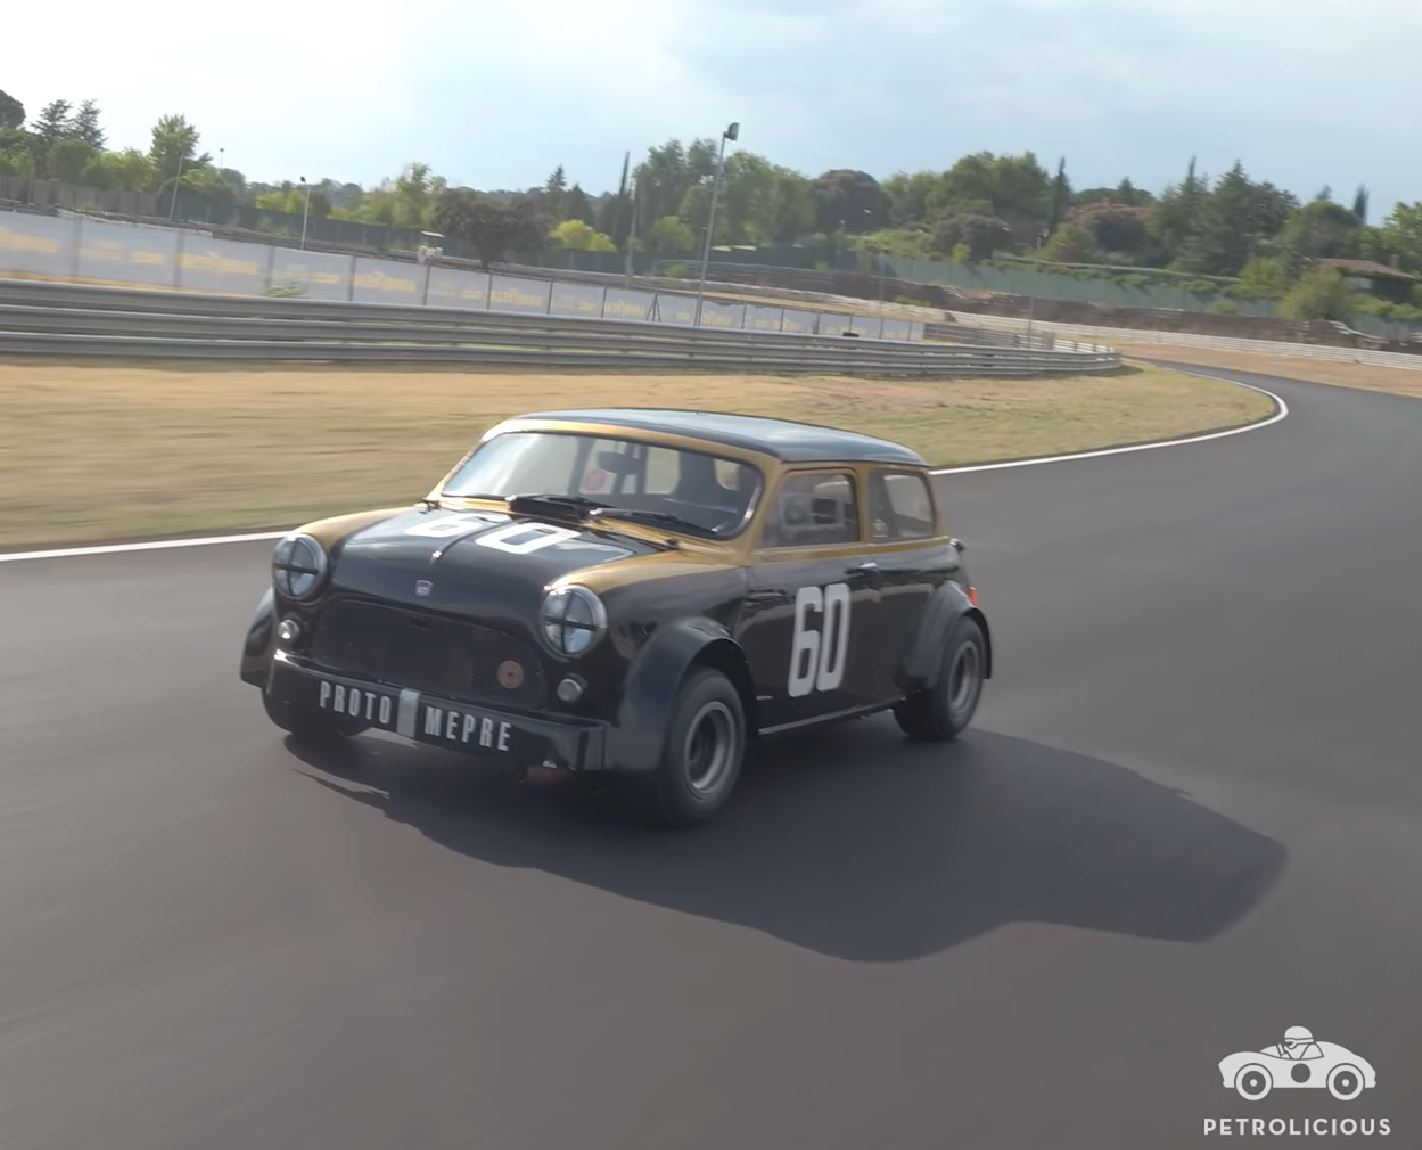 Minis Are Cool, But This Chopped And Flared Hill Climber Is Something Special